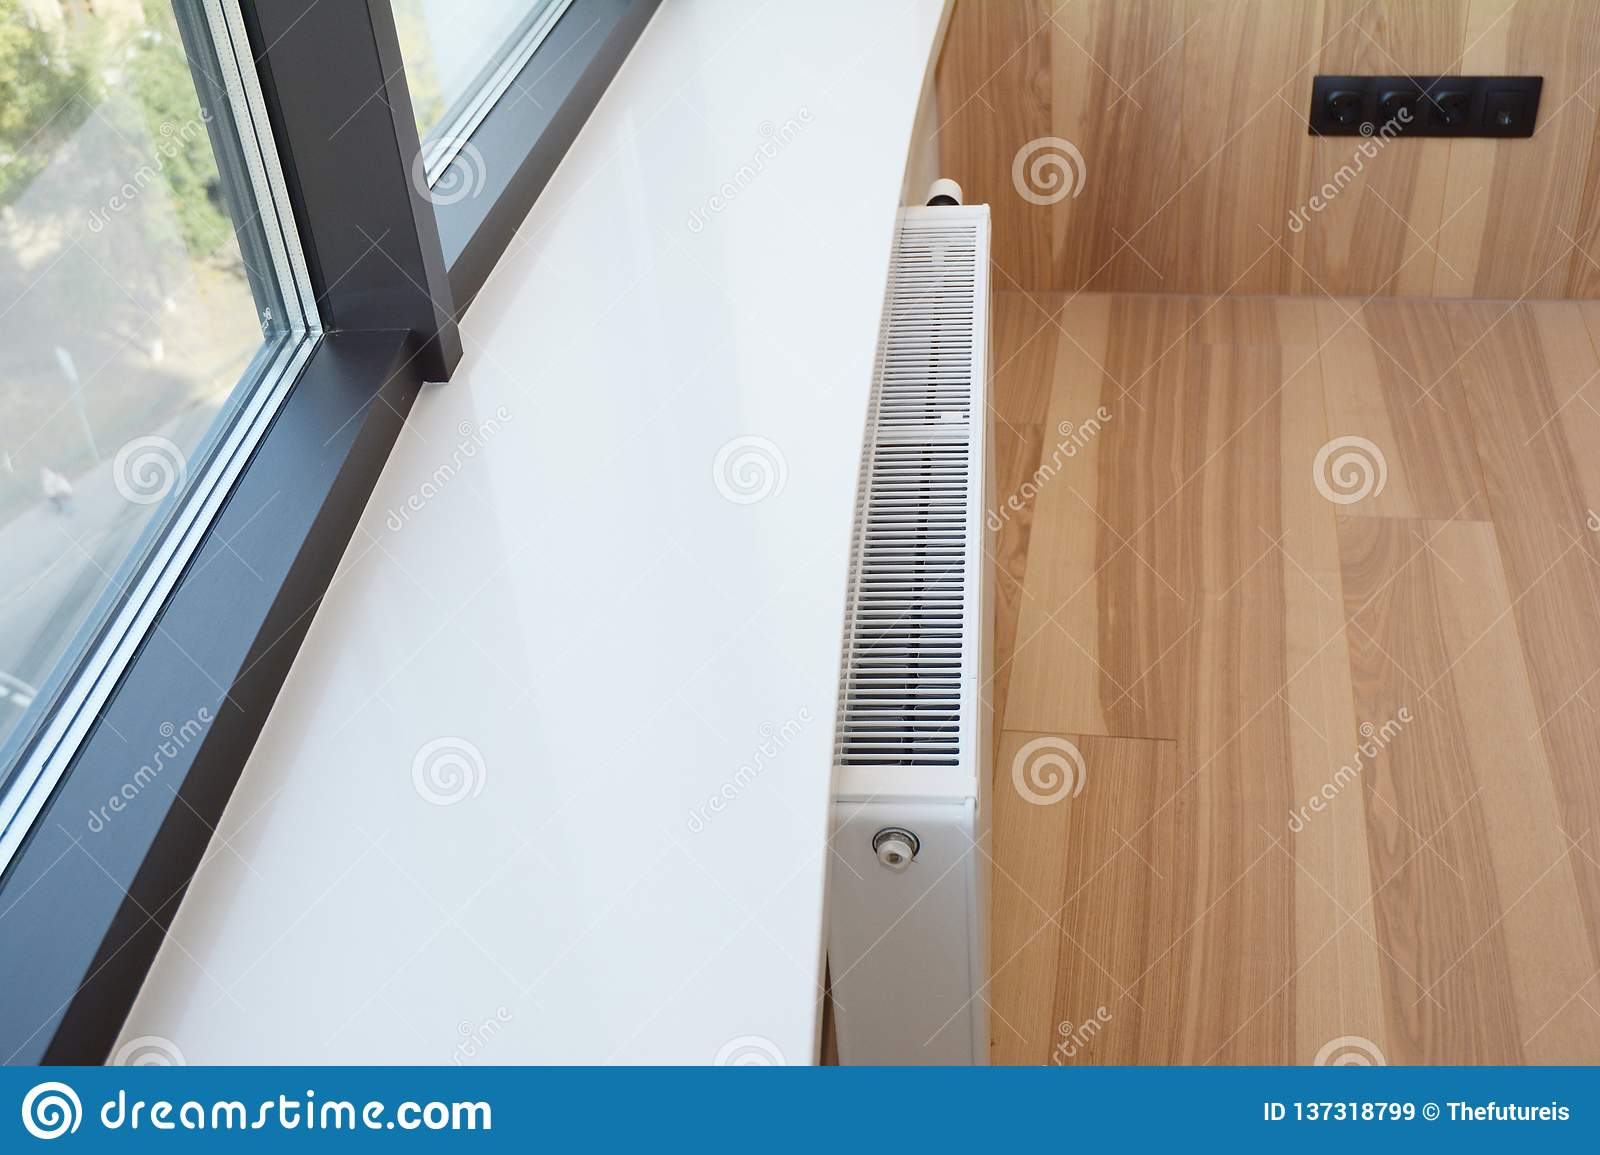 White Radiator Heating With Thermostat And Window Sill Stock Image Image Of Modern Thermostat 137318799